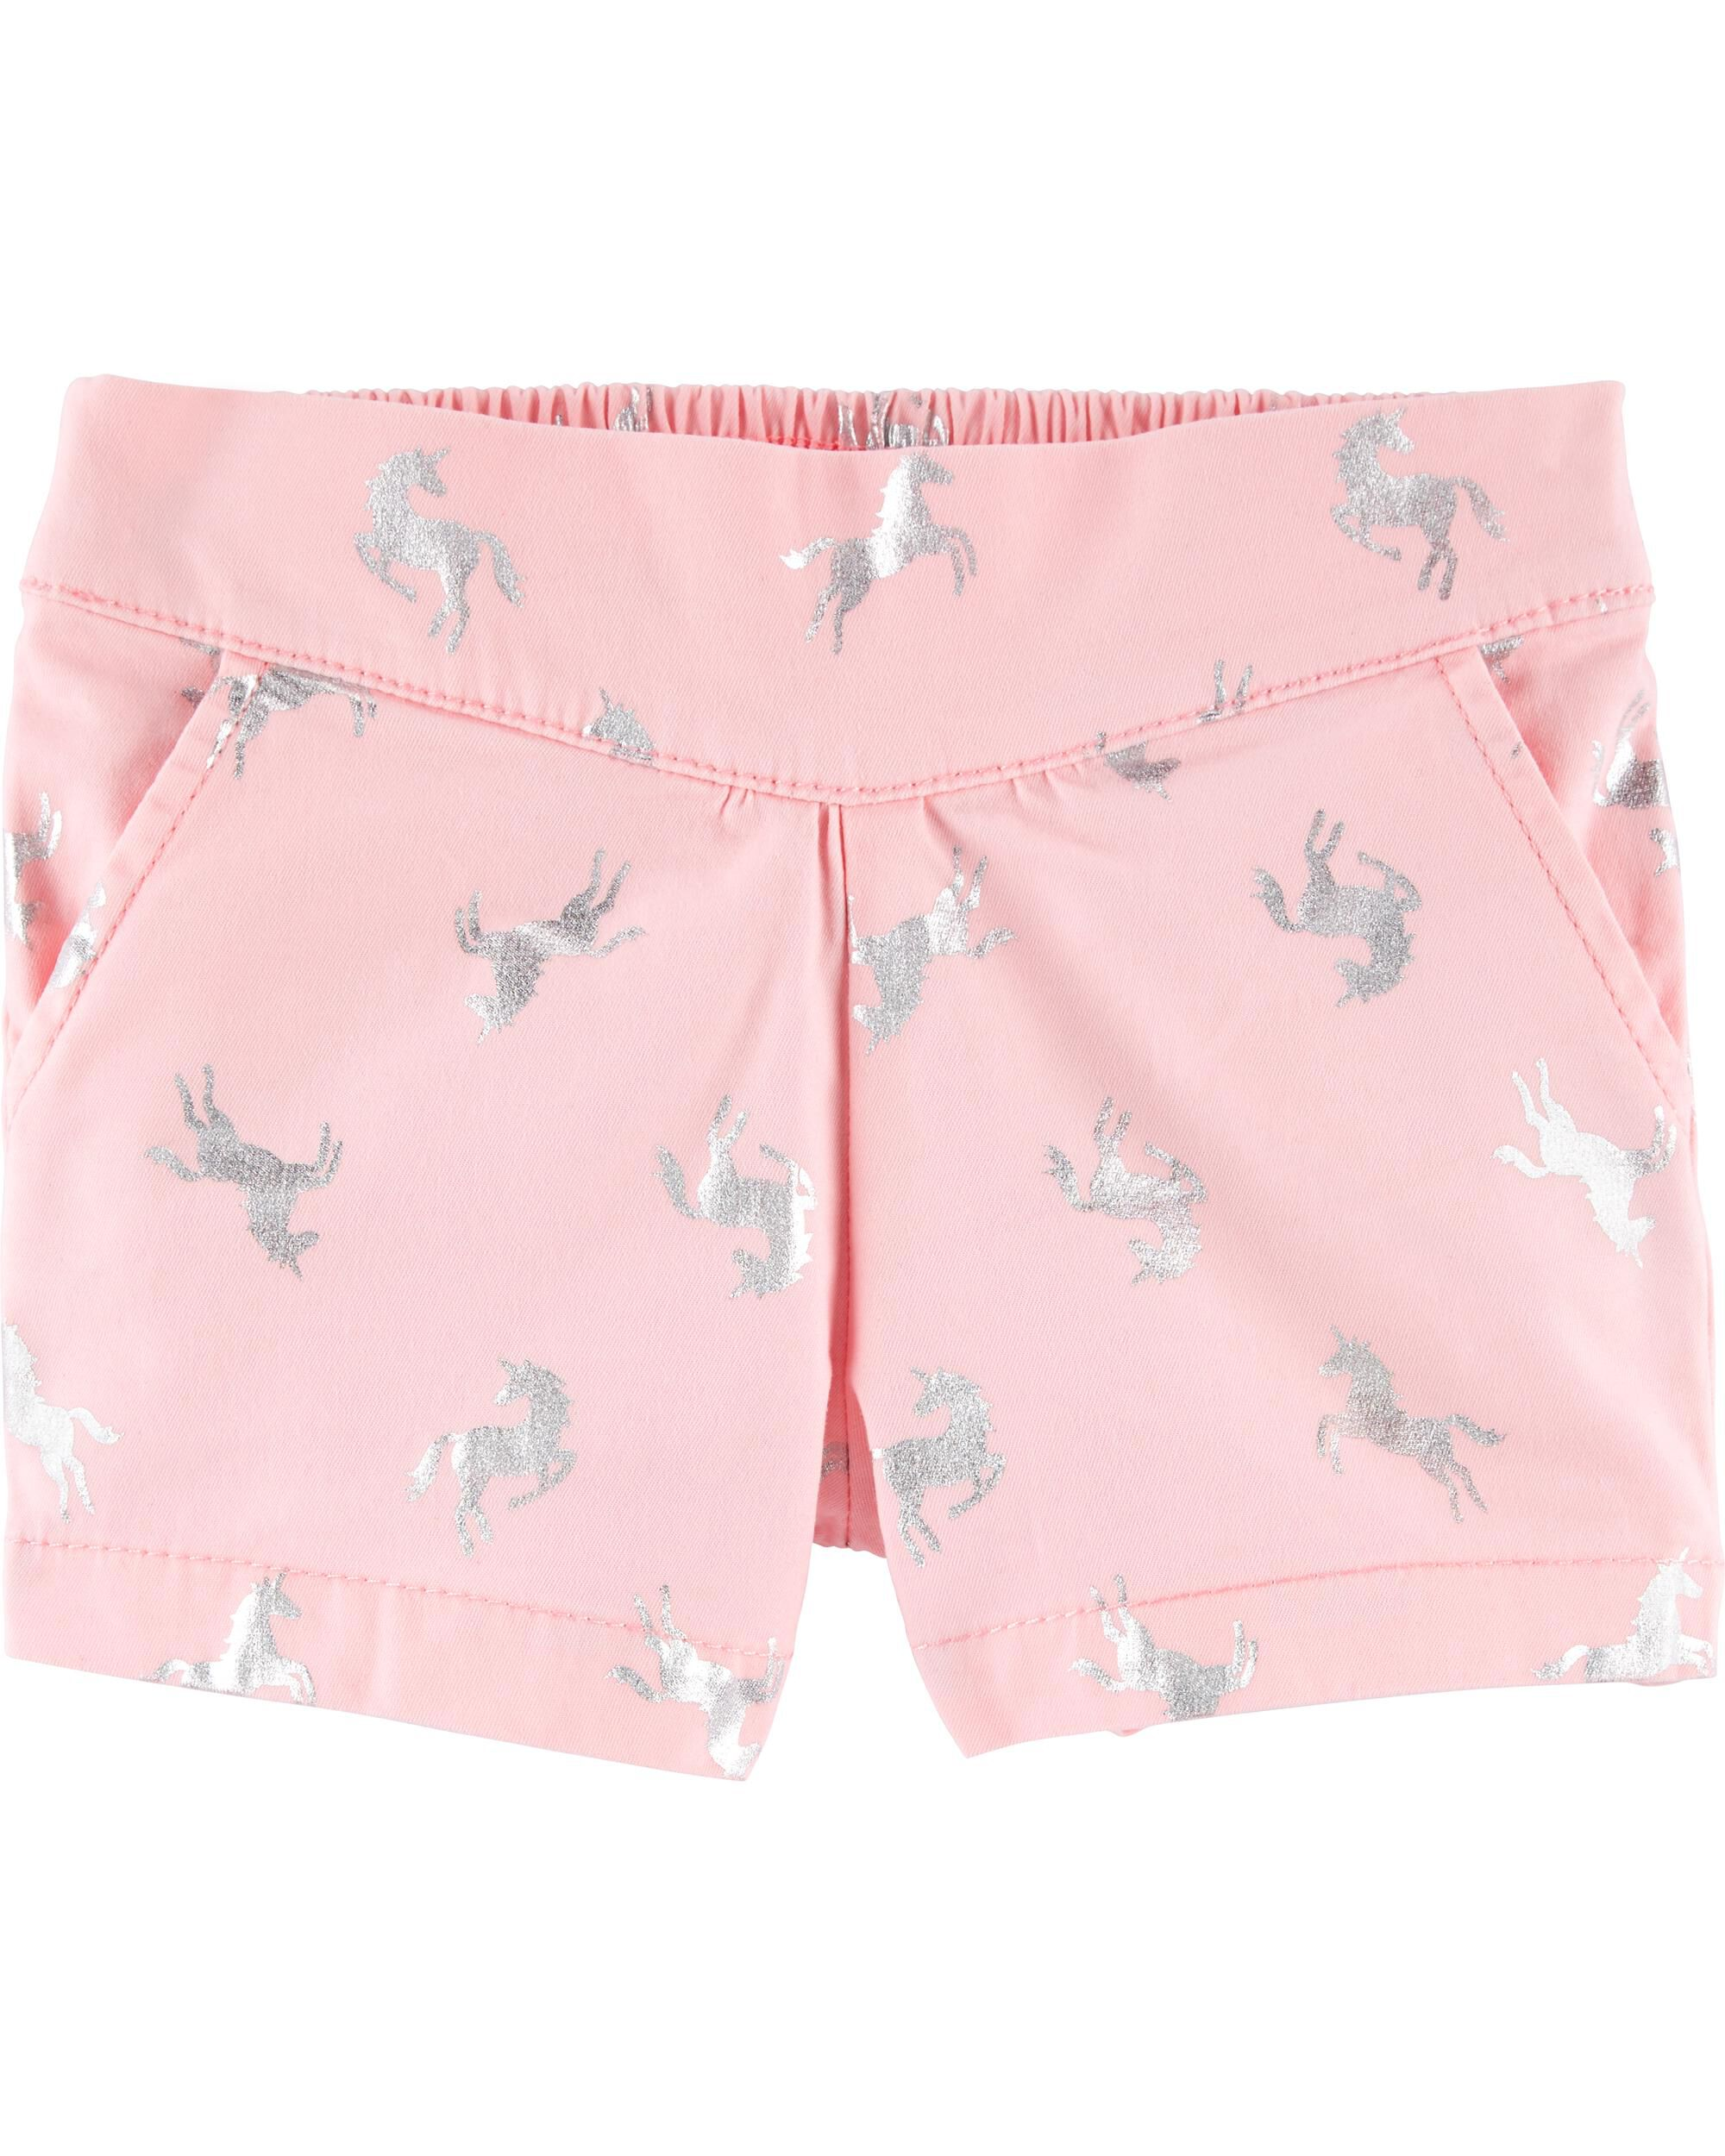 *Clearance*  Pleated Pull-On Shorts